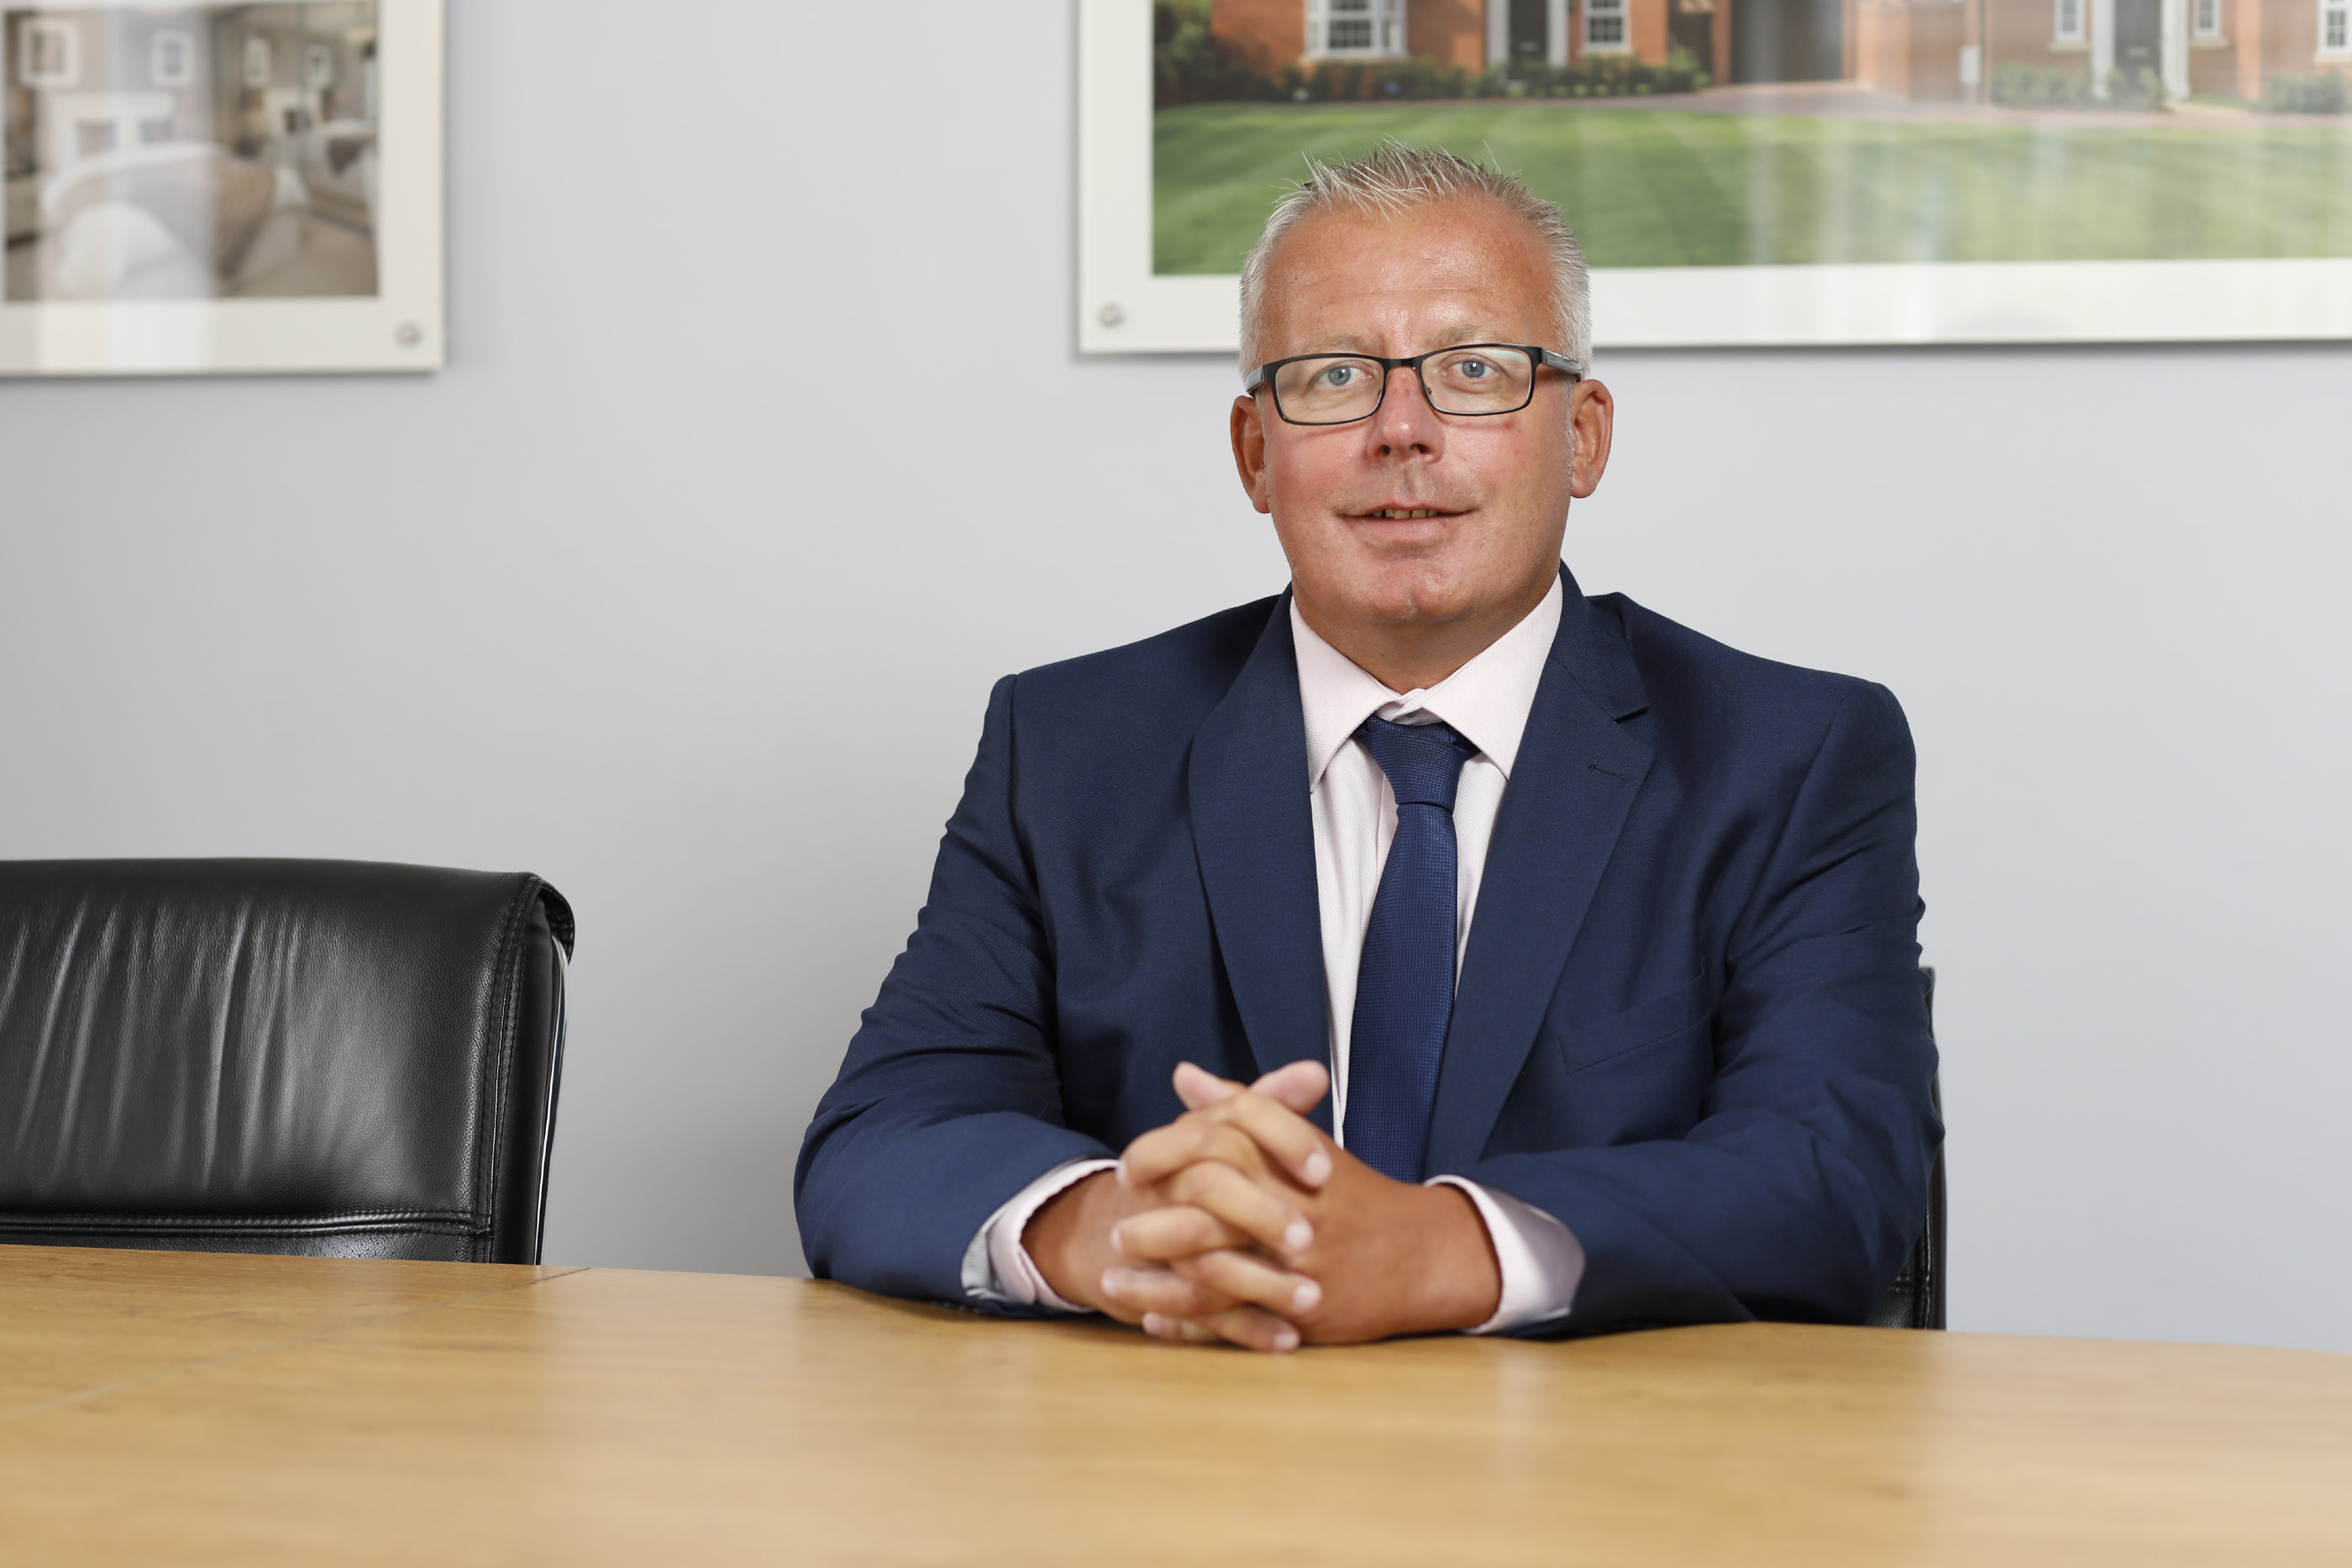 LEADING HOUSEBUILDER REVEALS LATEST INVESTMENT IN THE EAST MIDLANDS